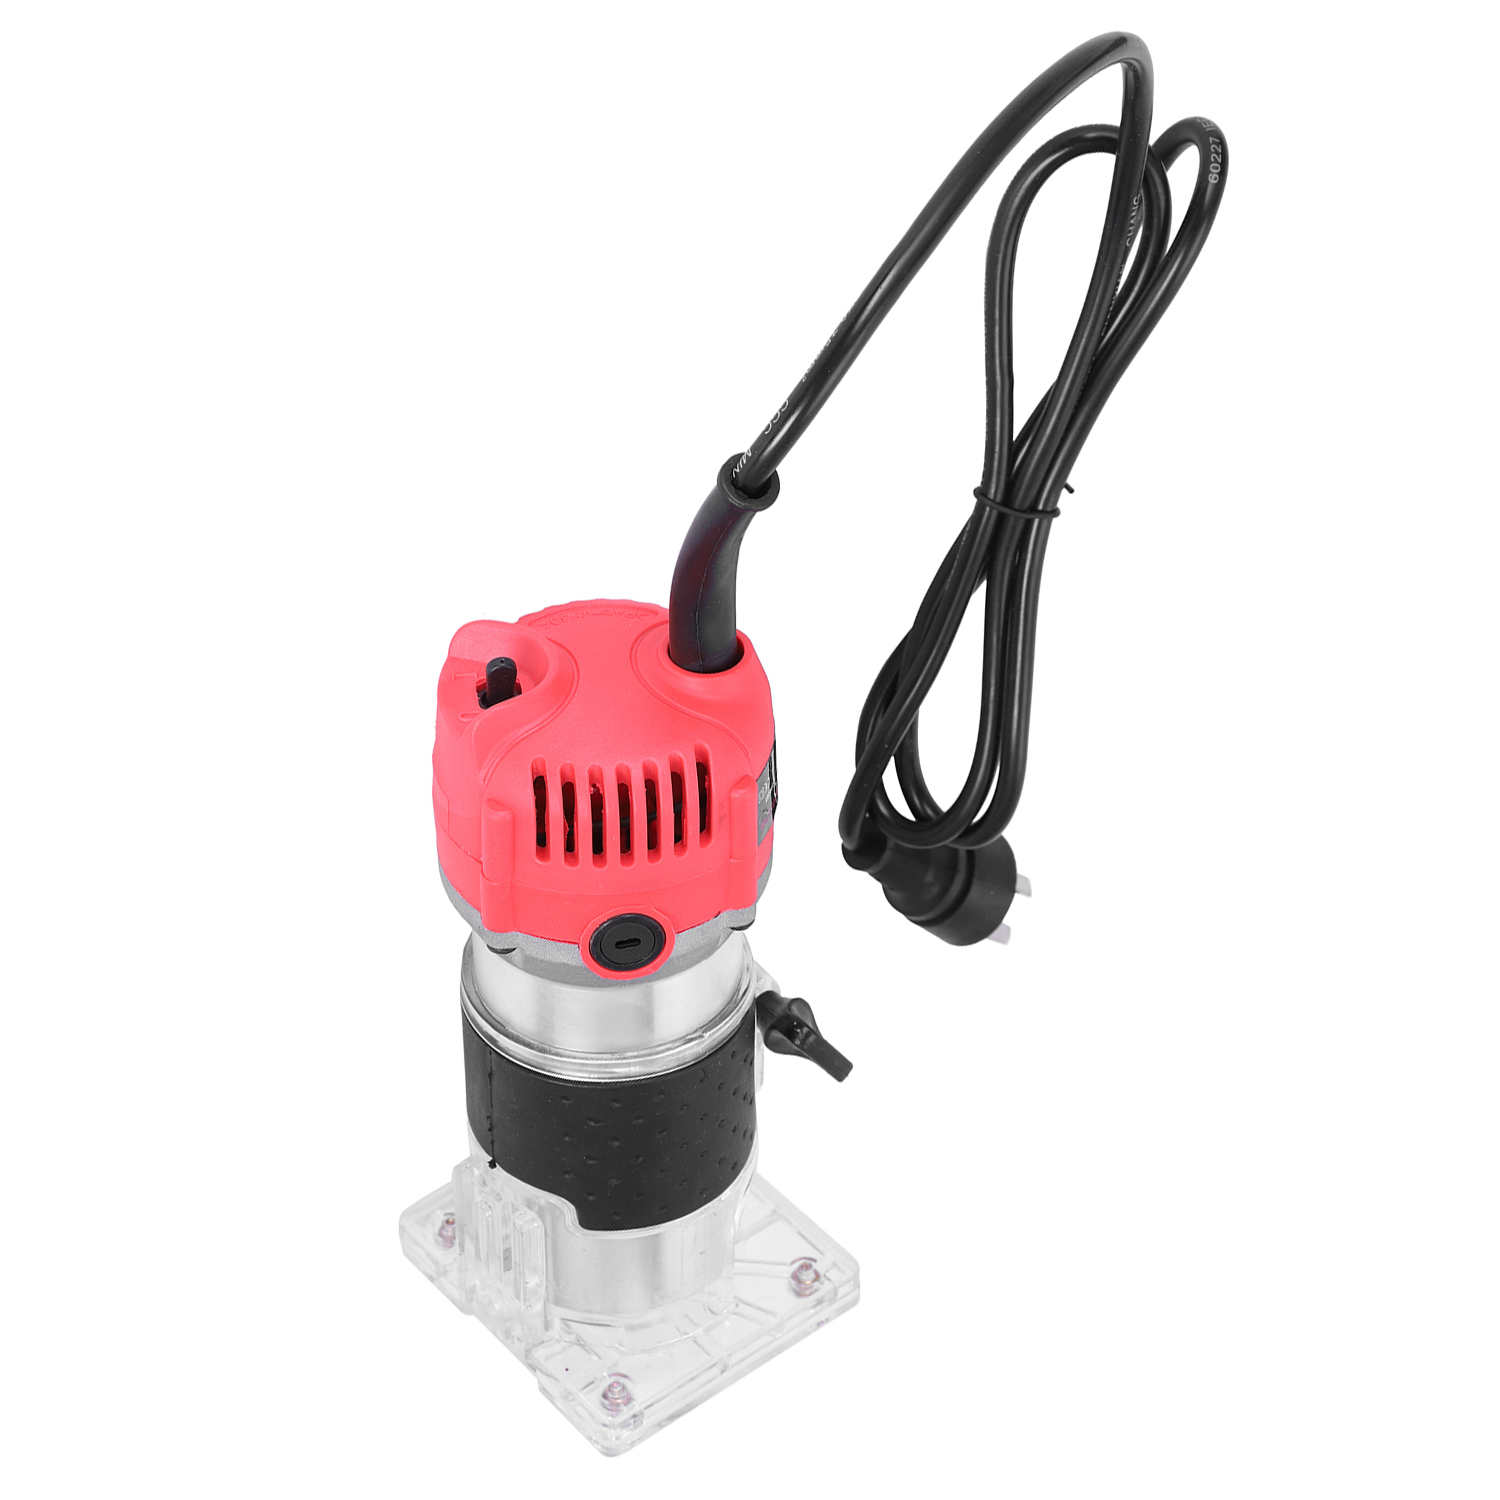 New 620W 110V Wood Trim Router 6.35mm Collection Diameter Electric Manual Trimmer Woodworking Laminated Palm Router WoodworkinNew 620W 110V Wood Trim Router 6.35mm Collection Diameter Electric Manual Trimmer Woodworking Laminated Palm Router Woodworkin